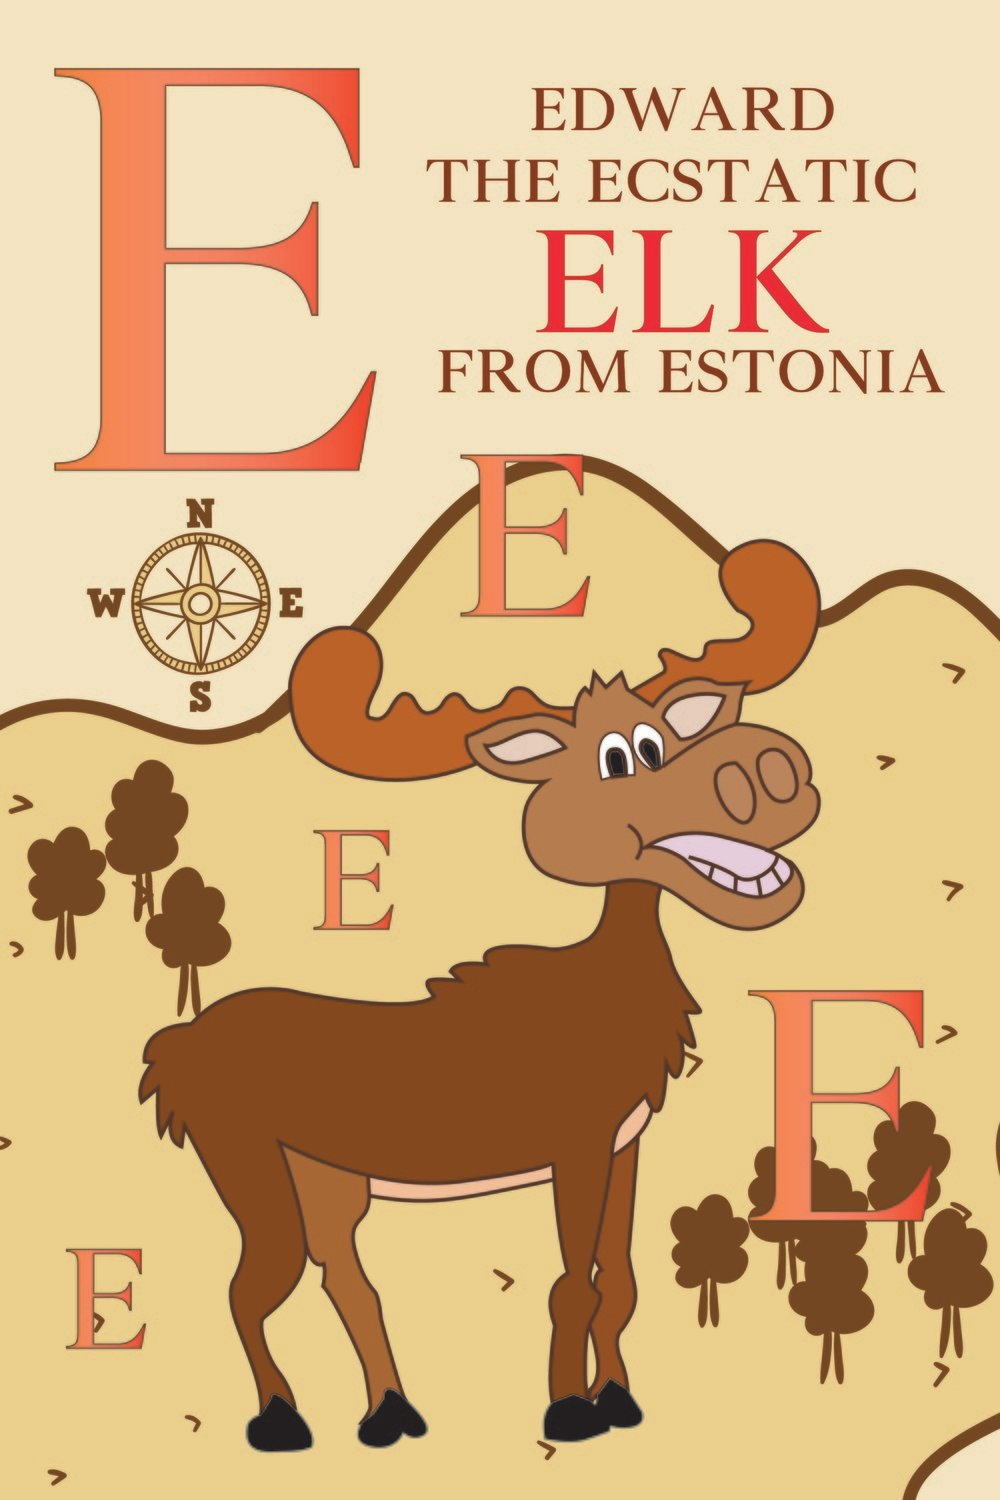 Edward The Ecstatic ELK From ESTONIA Poster